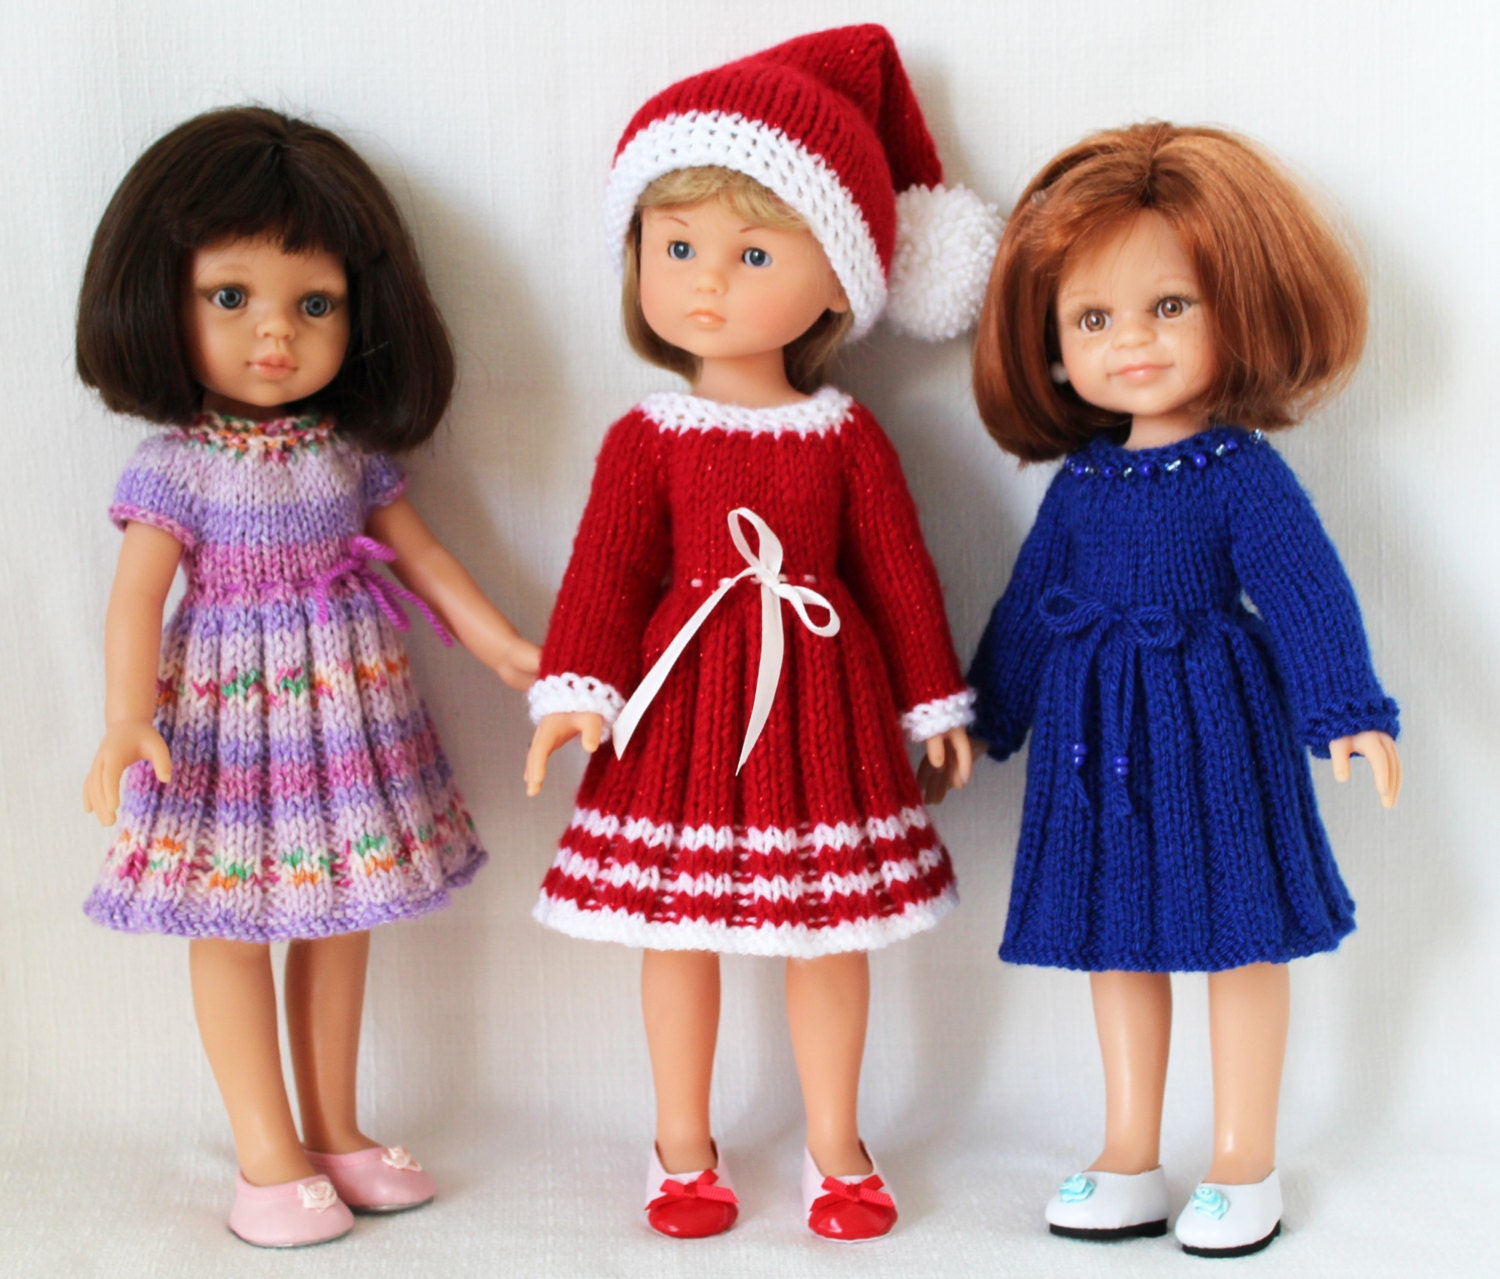 Knitting pattern for Holiday Dresses and Hat for Paola Reina